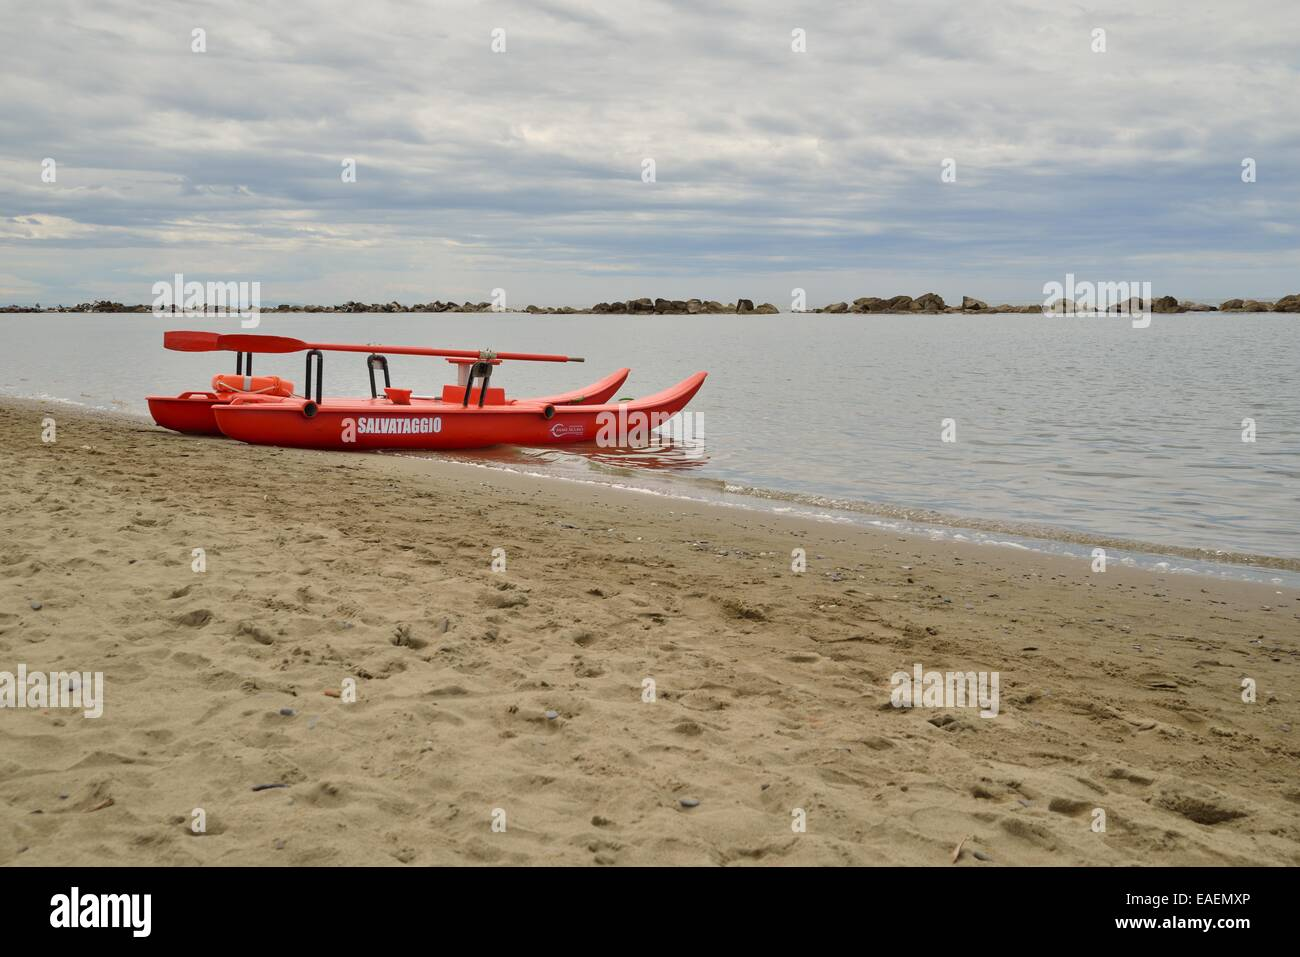 rescue boat (Pattìno-moscone) on the beach. - Stock Image